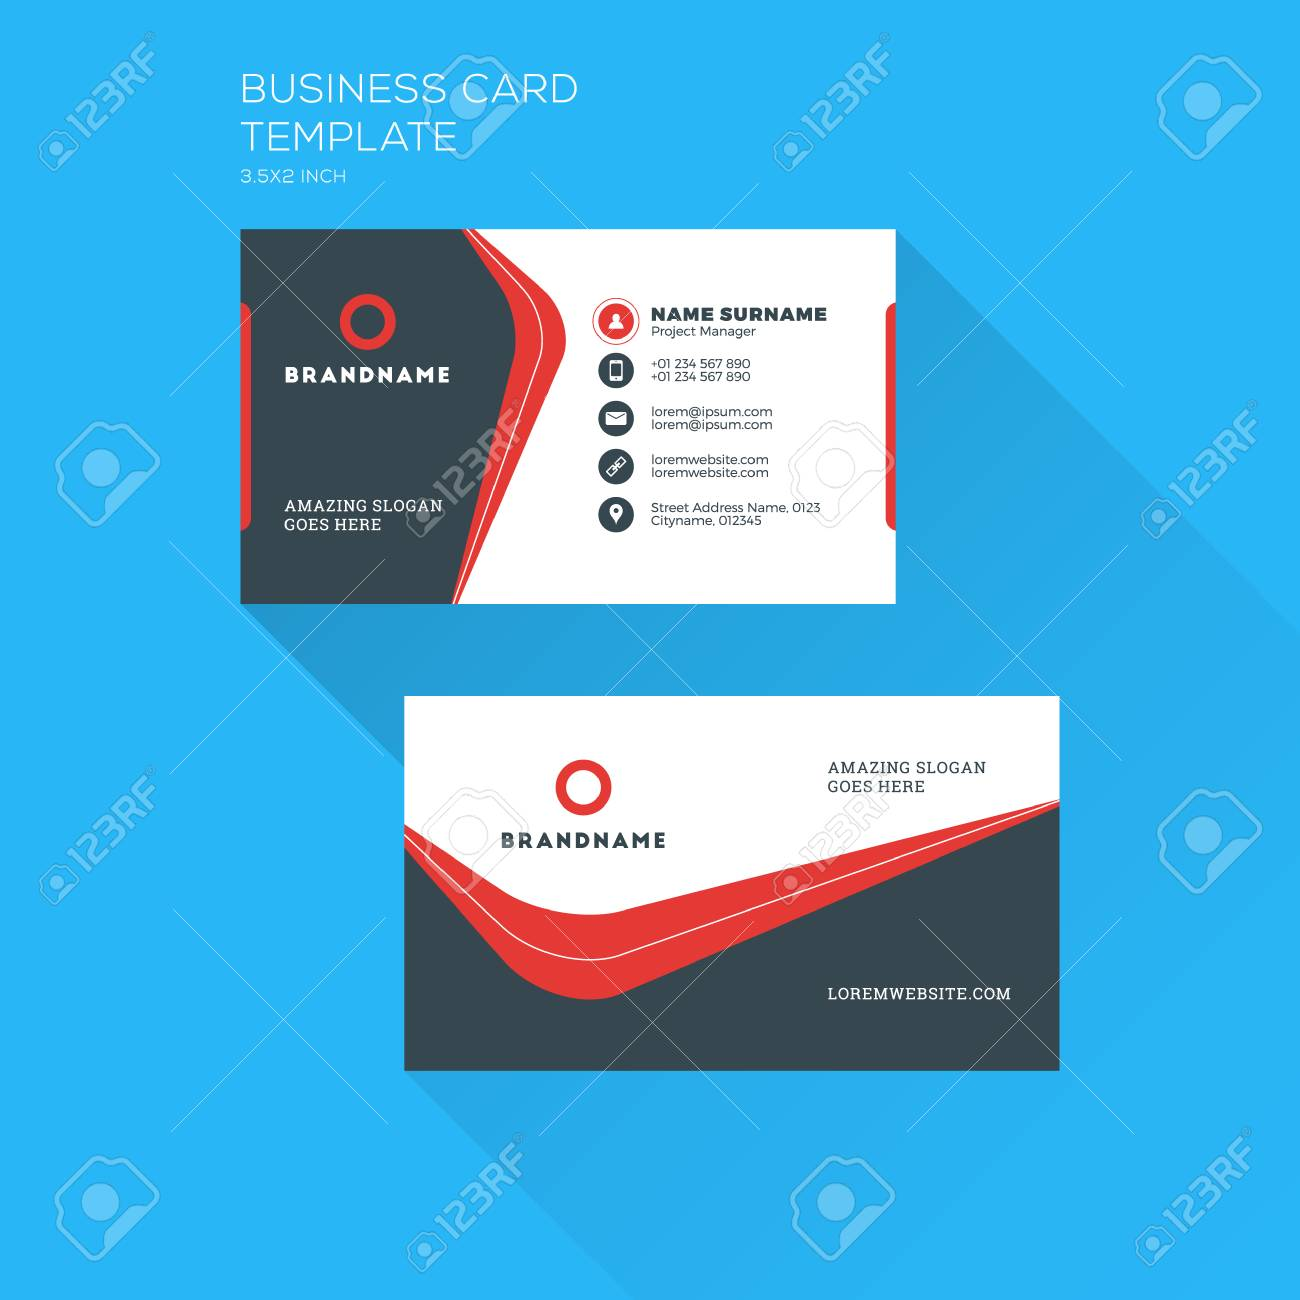 Corporate business card print template personal visiting card corporate business card print template personal visiting card with company clean flat design wajeb Gallery